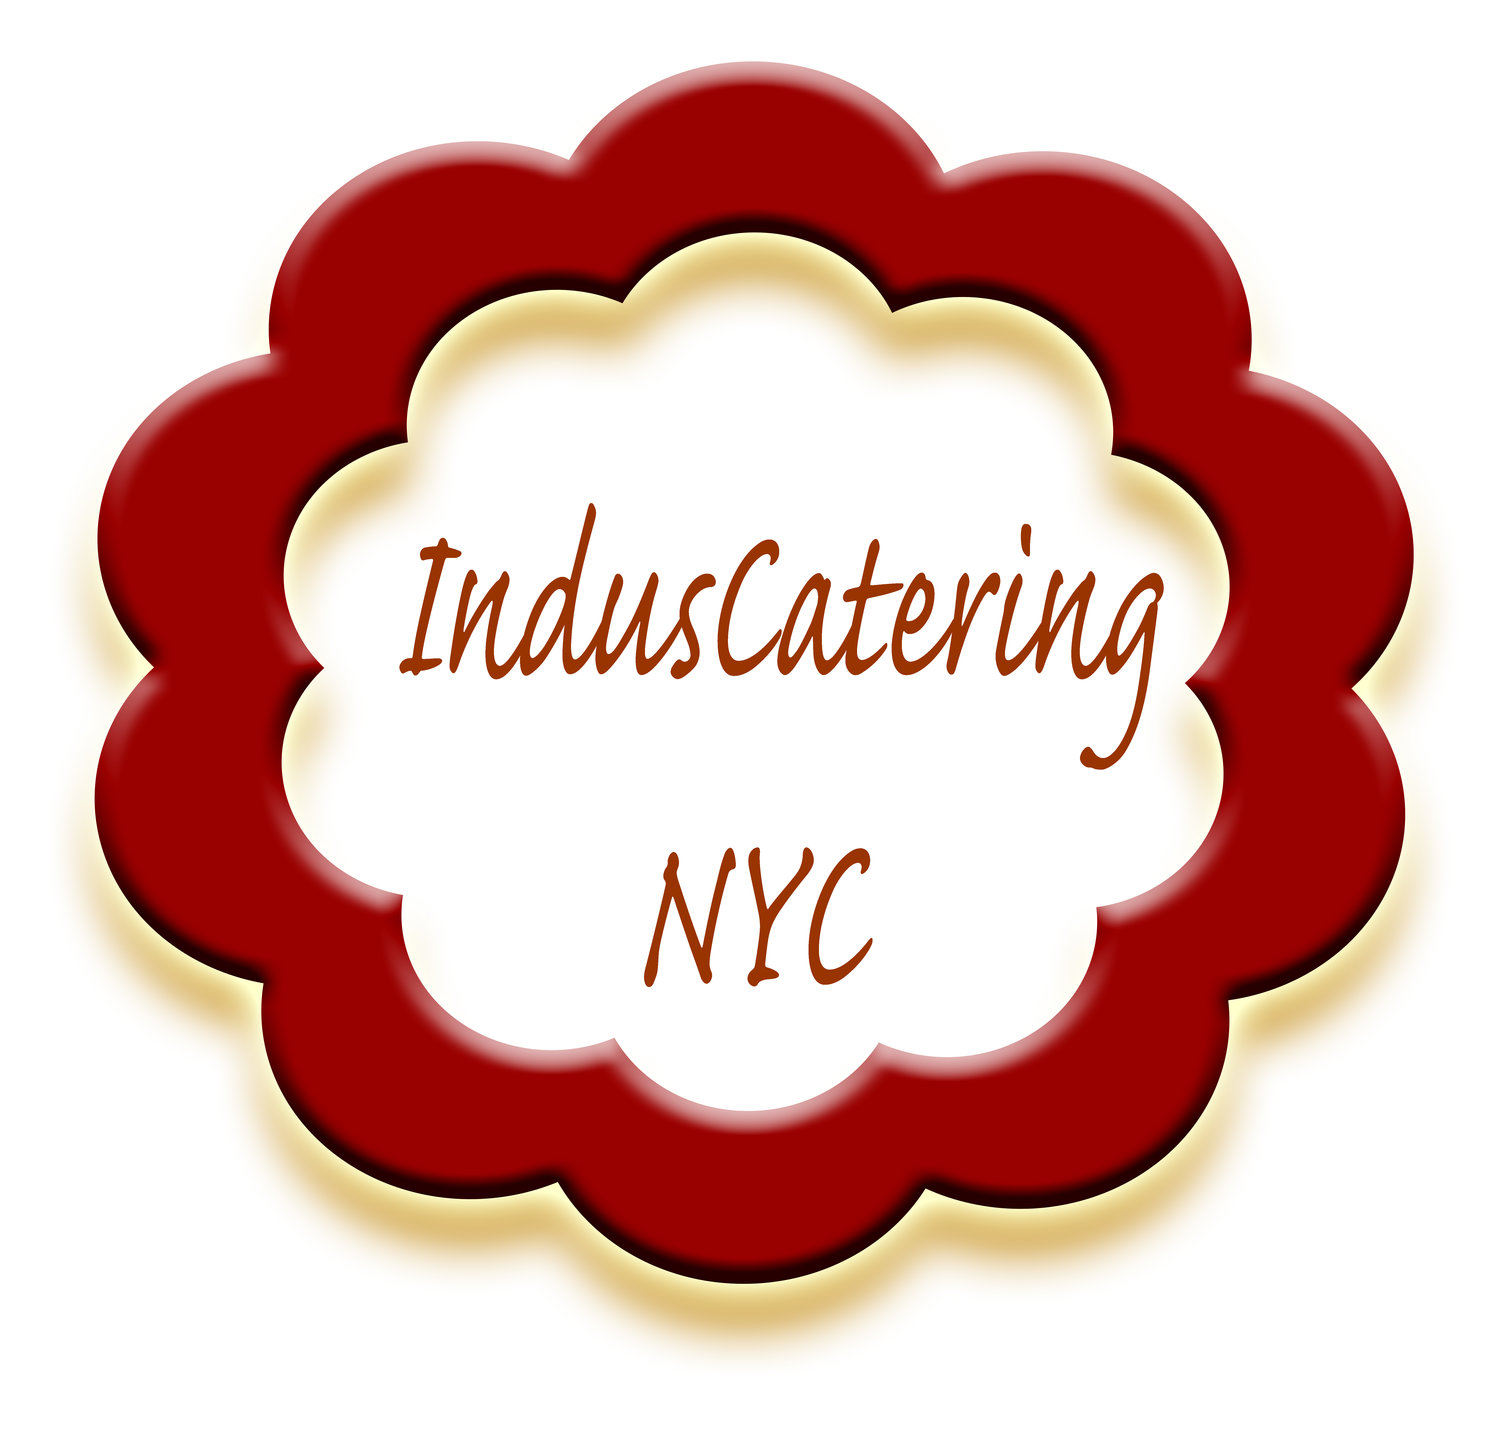 Indus Catering NYC